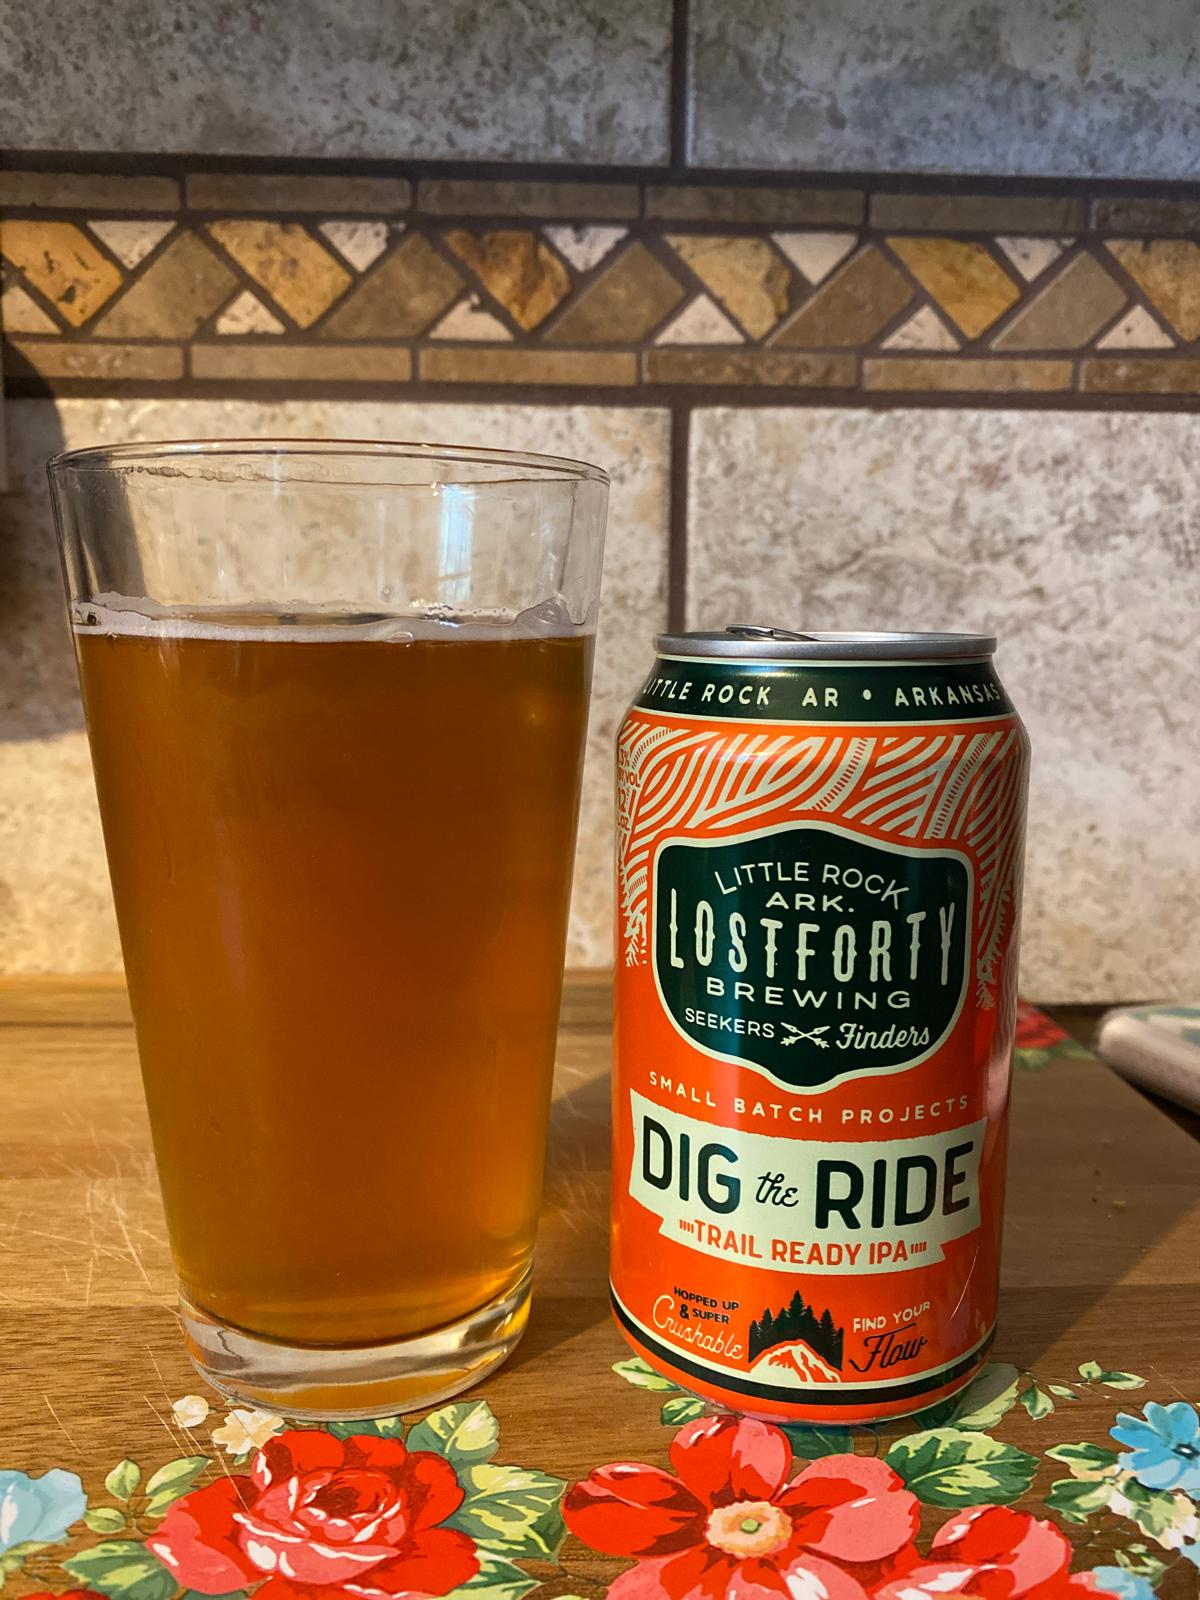 Dig The Ride: Trail Ready IPA